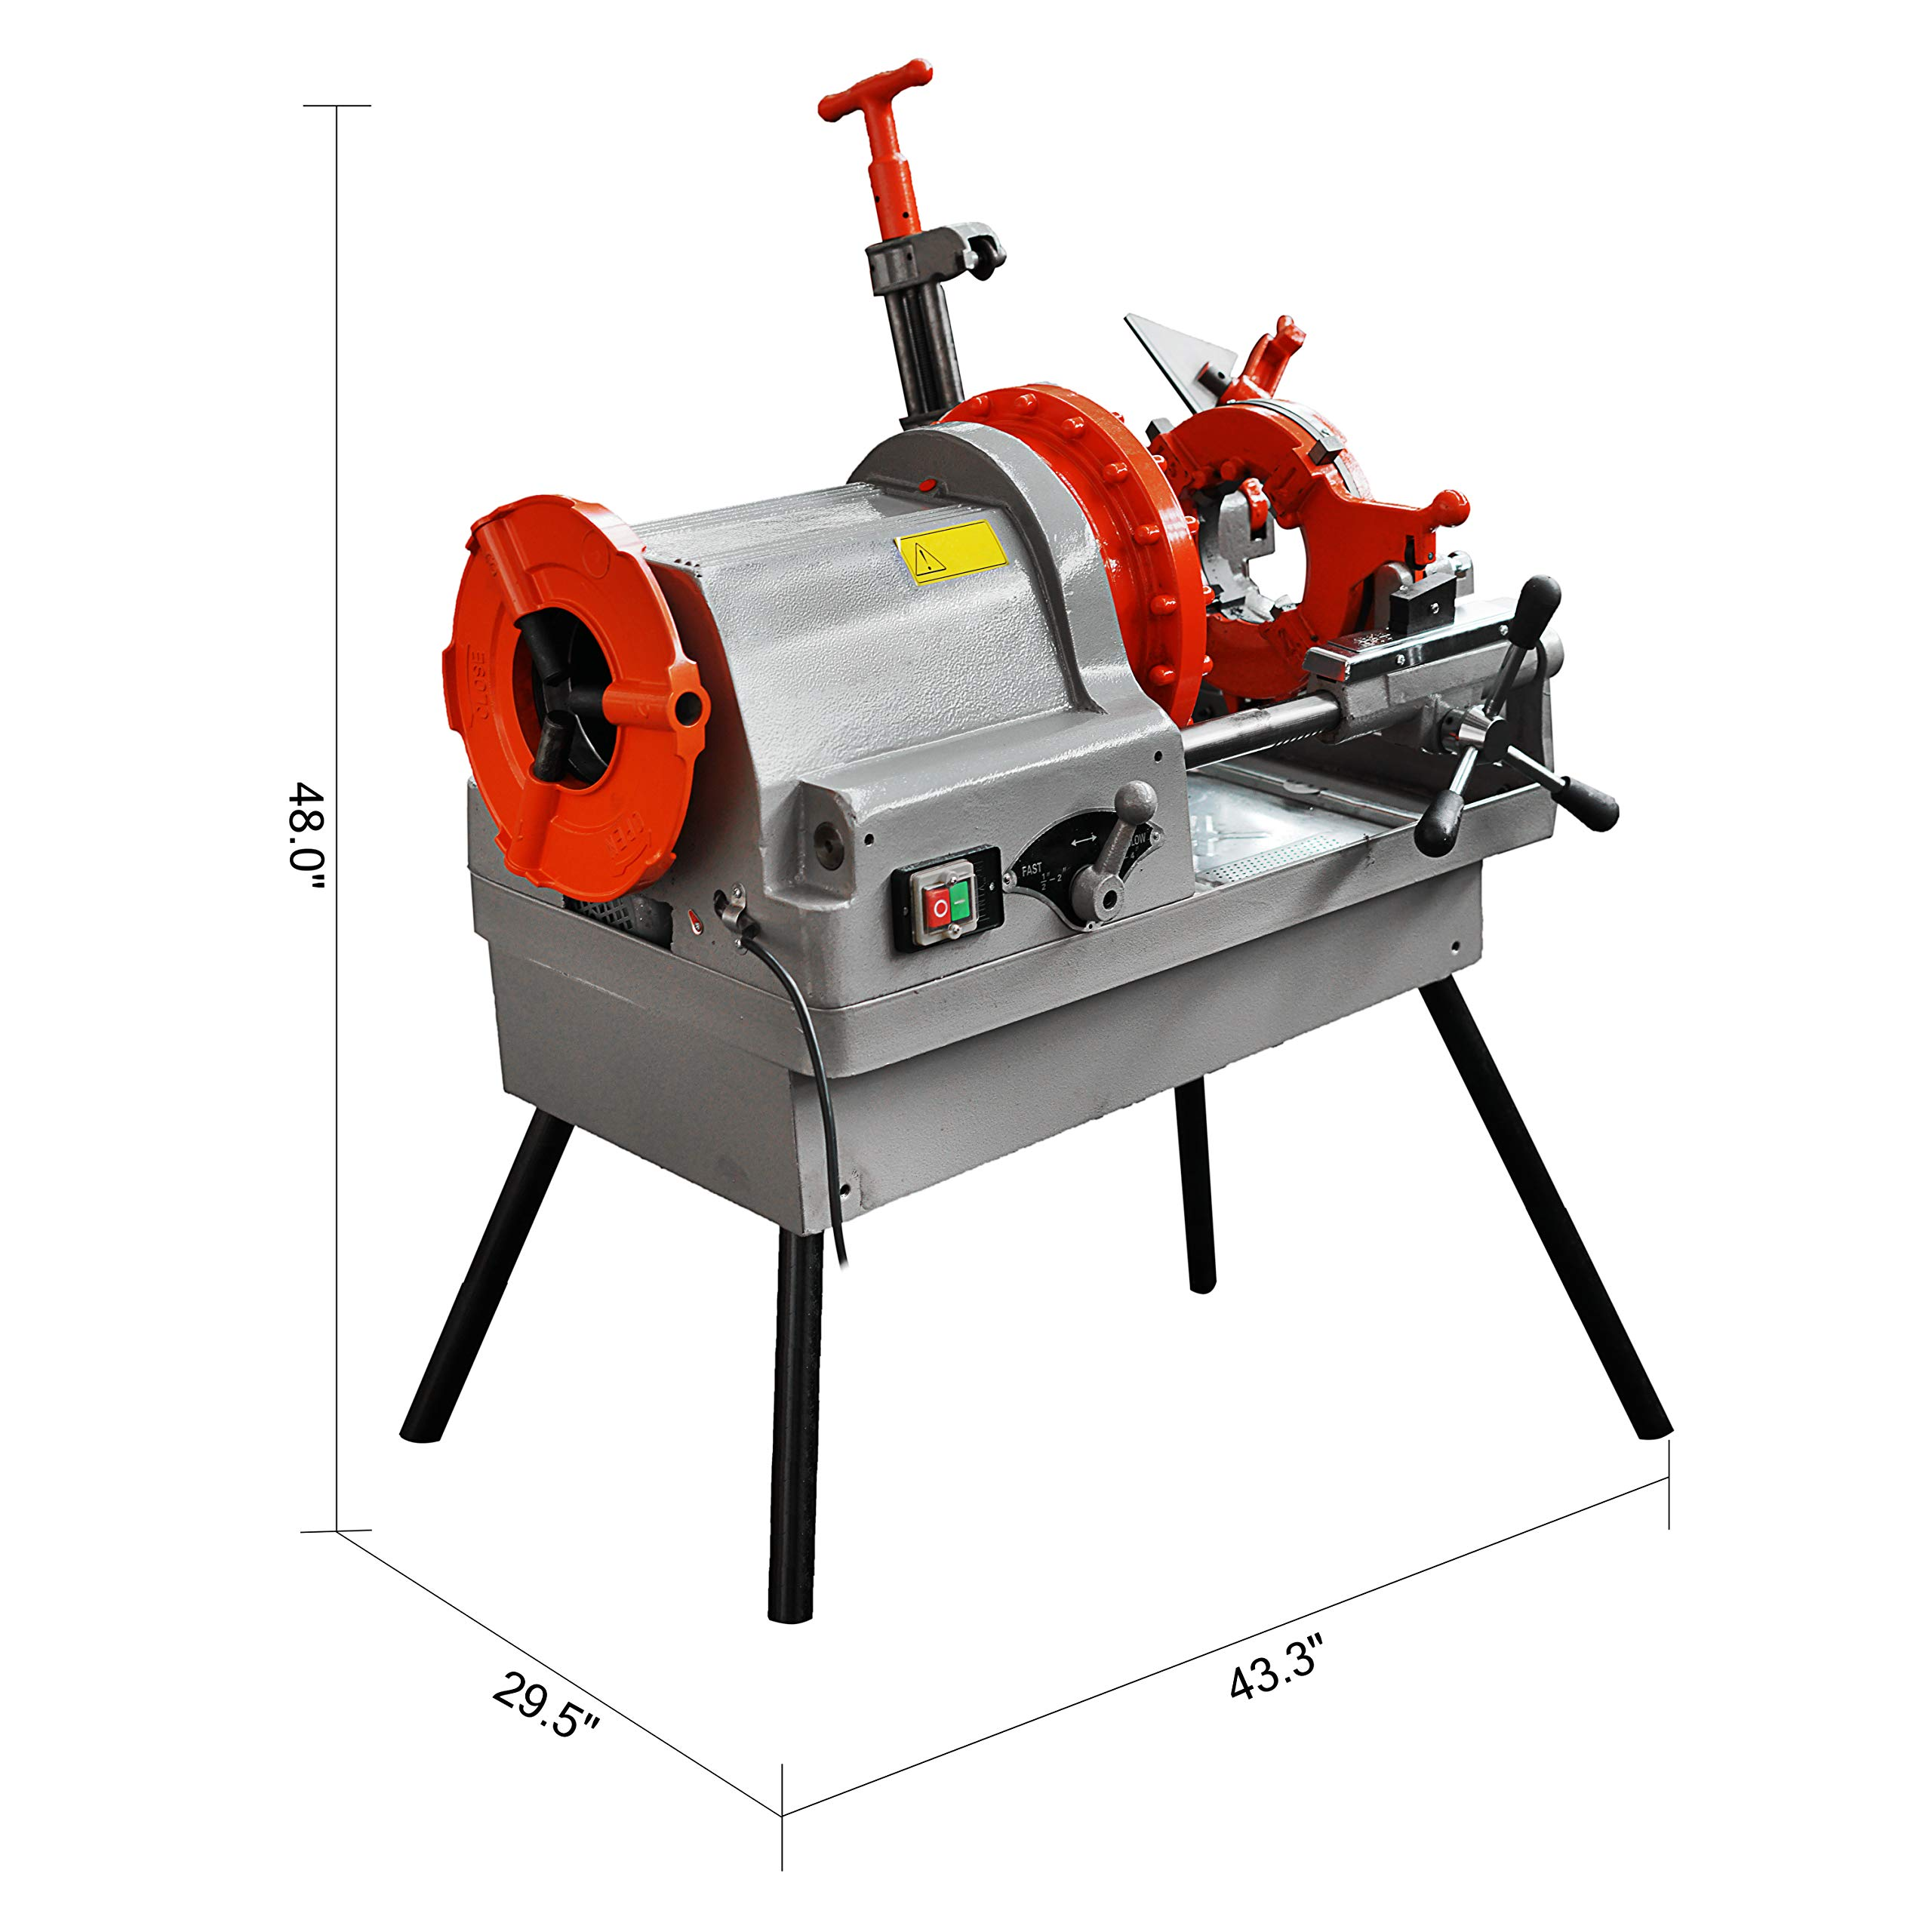 Mophorn Electric Pipe Threading Machine 1/2''-4'' Pipe Threading Cutter 750W Deburrer NPT P100 Upstanding by Mophorn (Image #1)